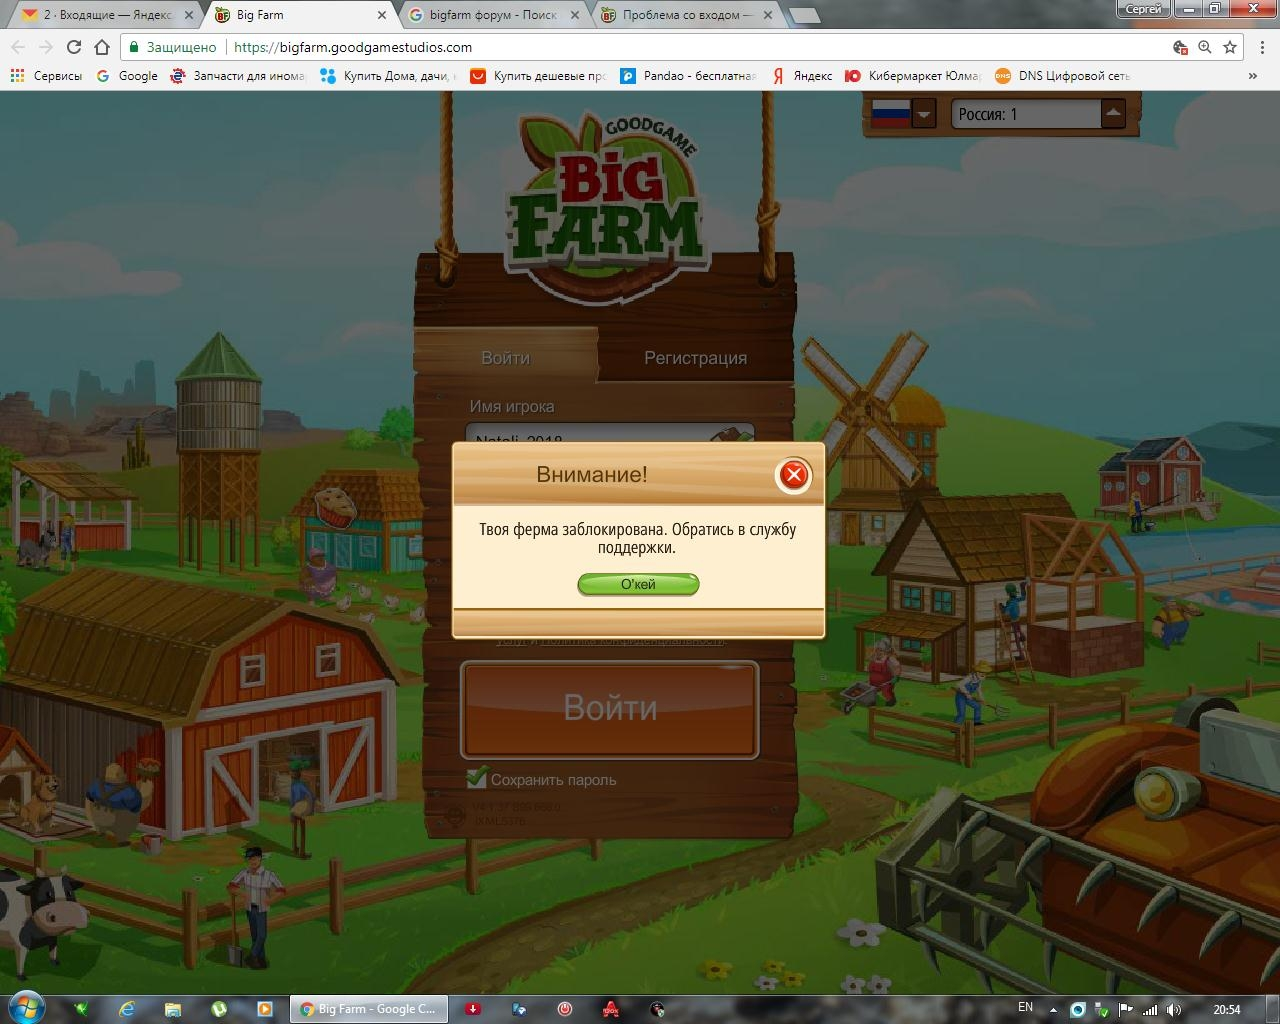 Bigfarm goodgamestudios login